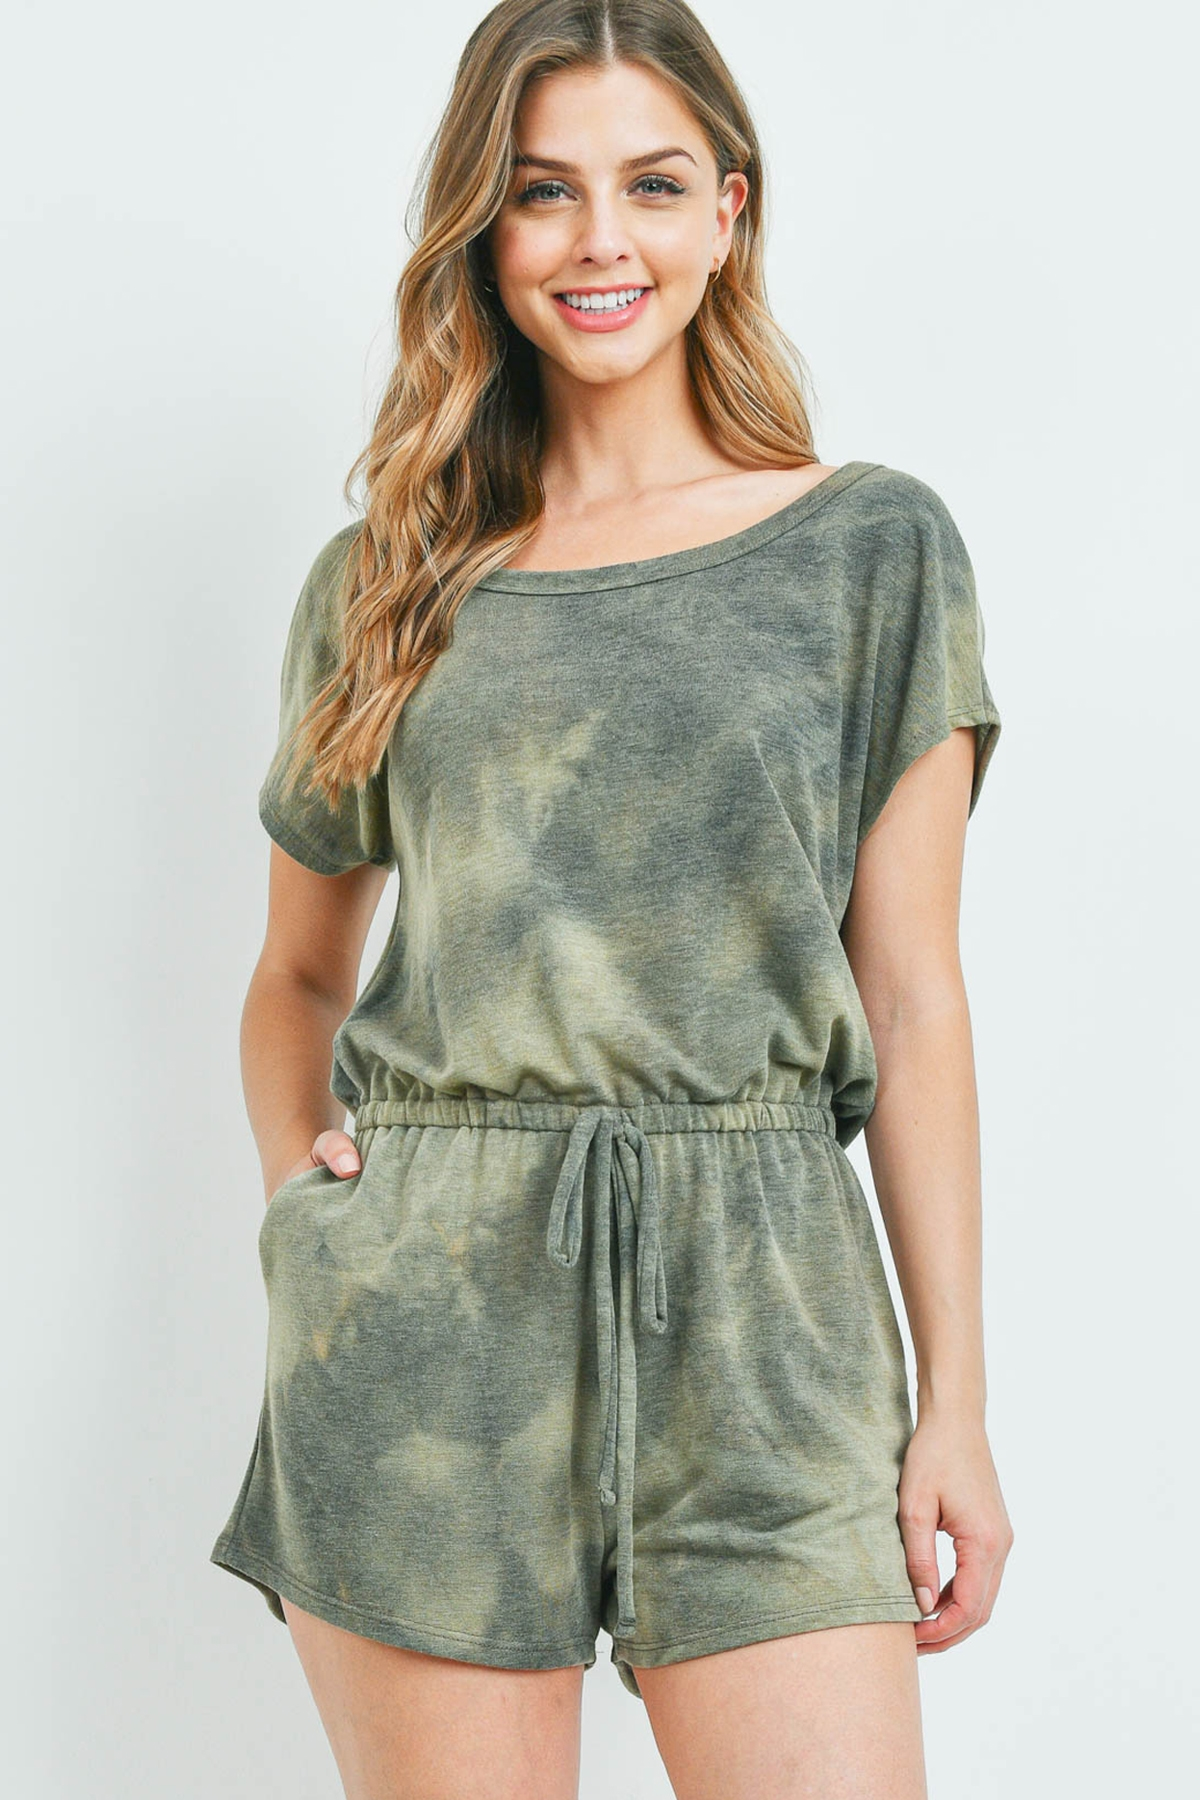 S5-10-3-PPP4066-OV - TIE DYE ROMPER WITH SELF TIE- OLIVE 1-2-2-2